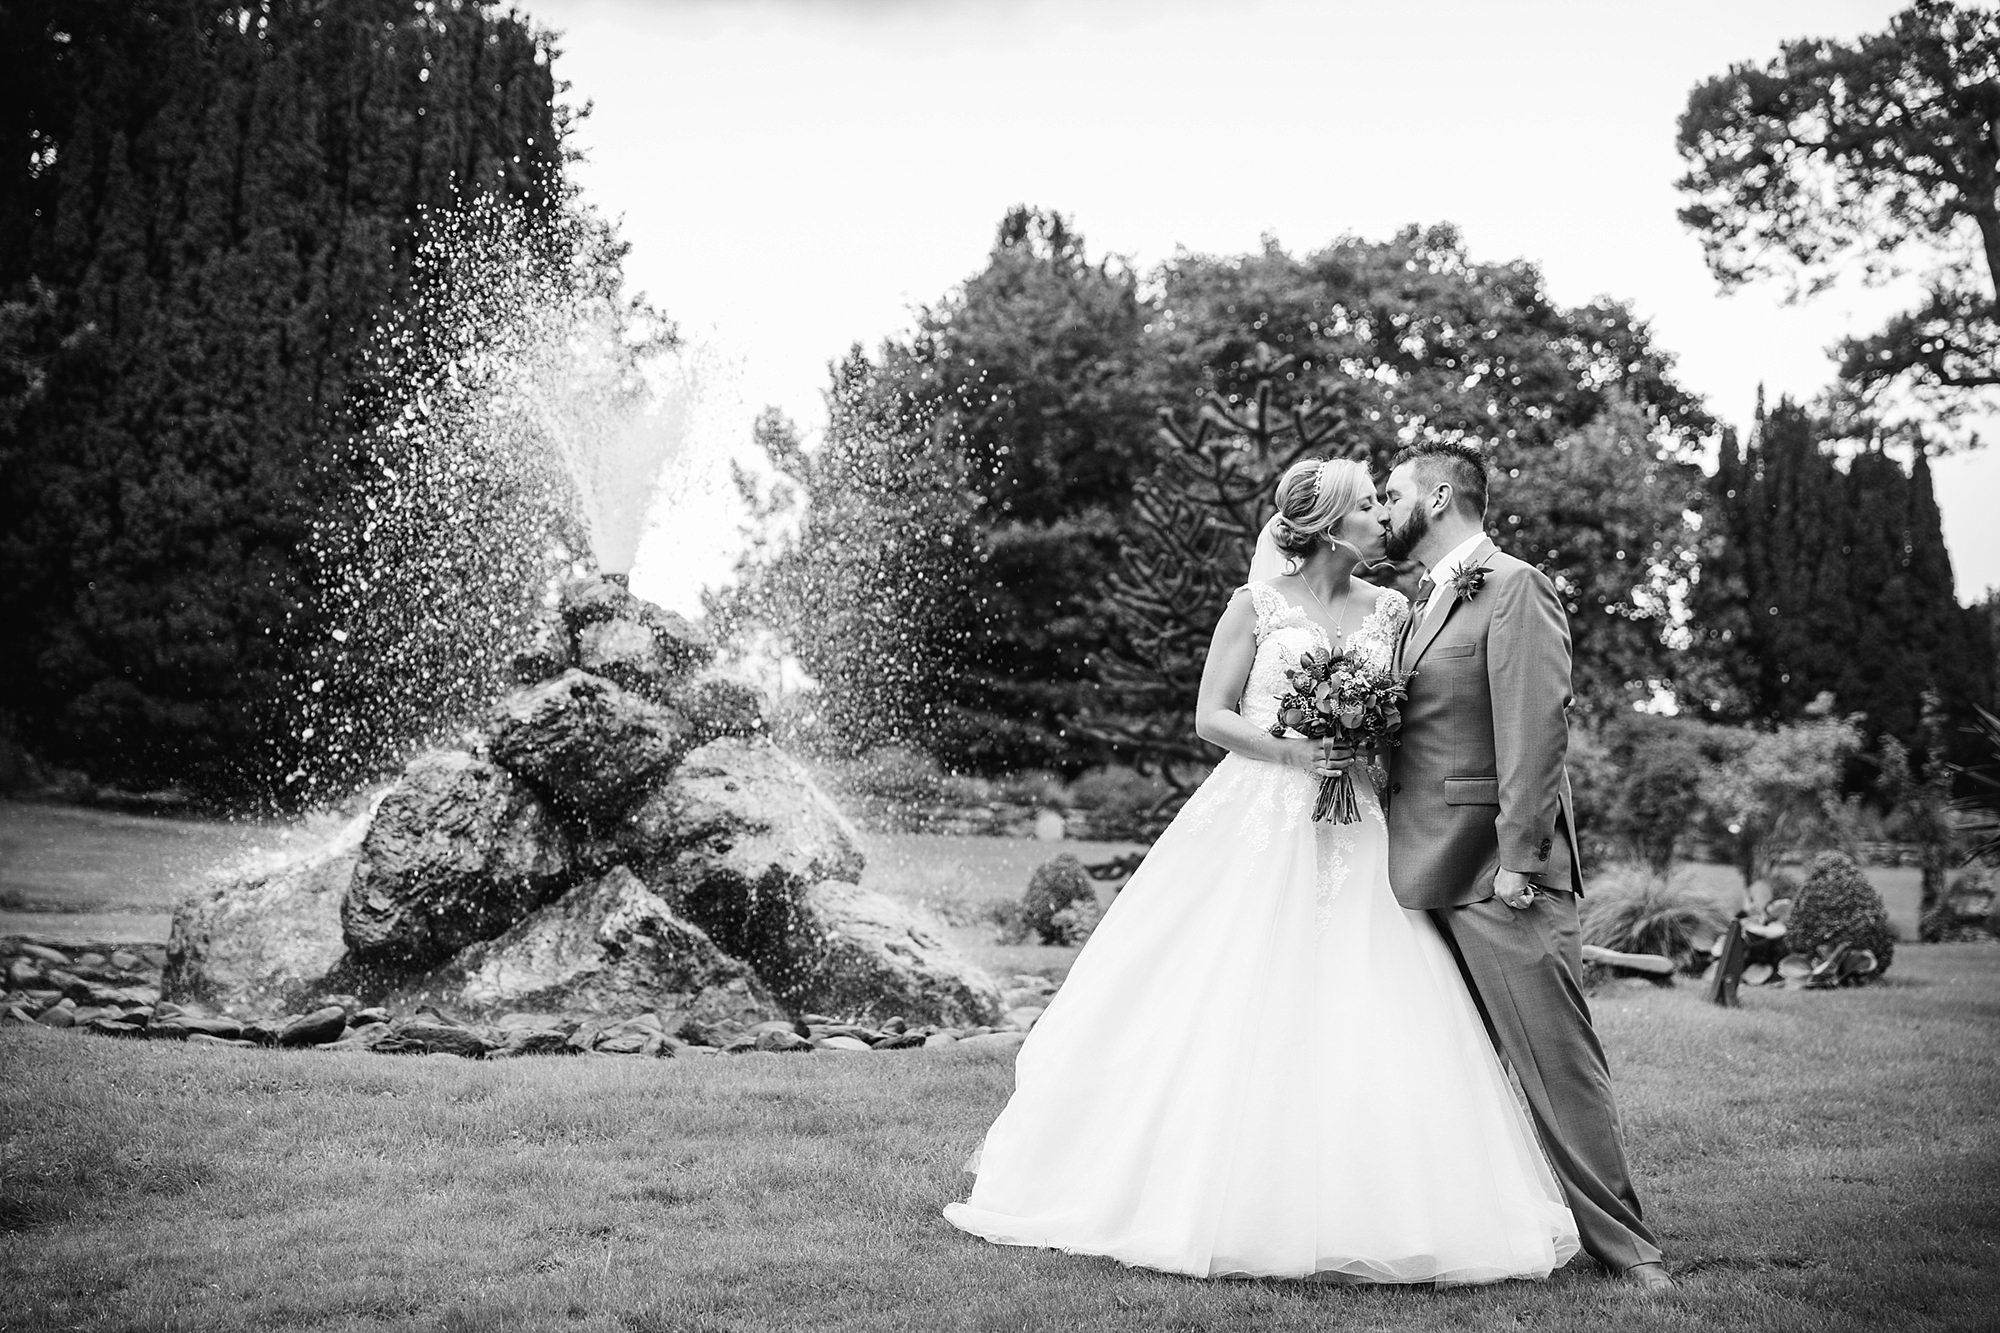 A fun wedding at Plas Isaf - bride and groom stand next to fountain